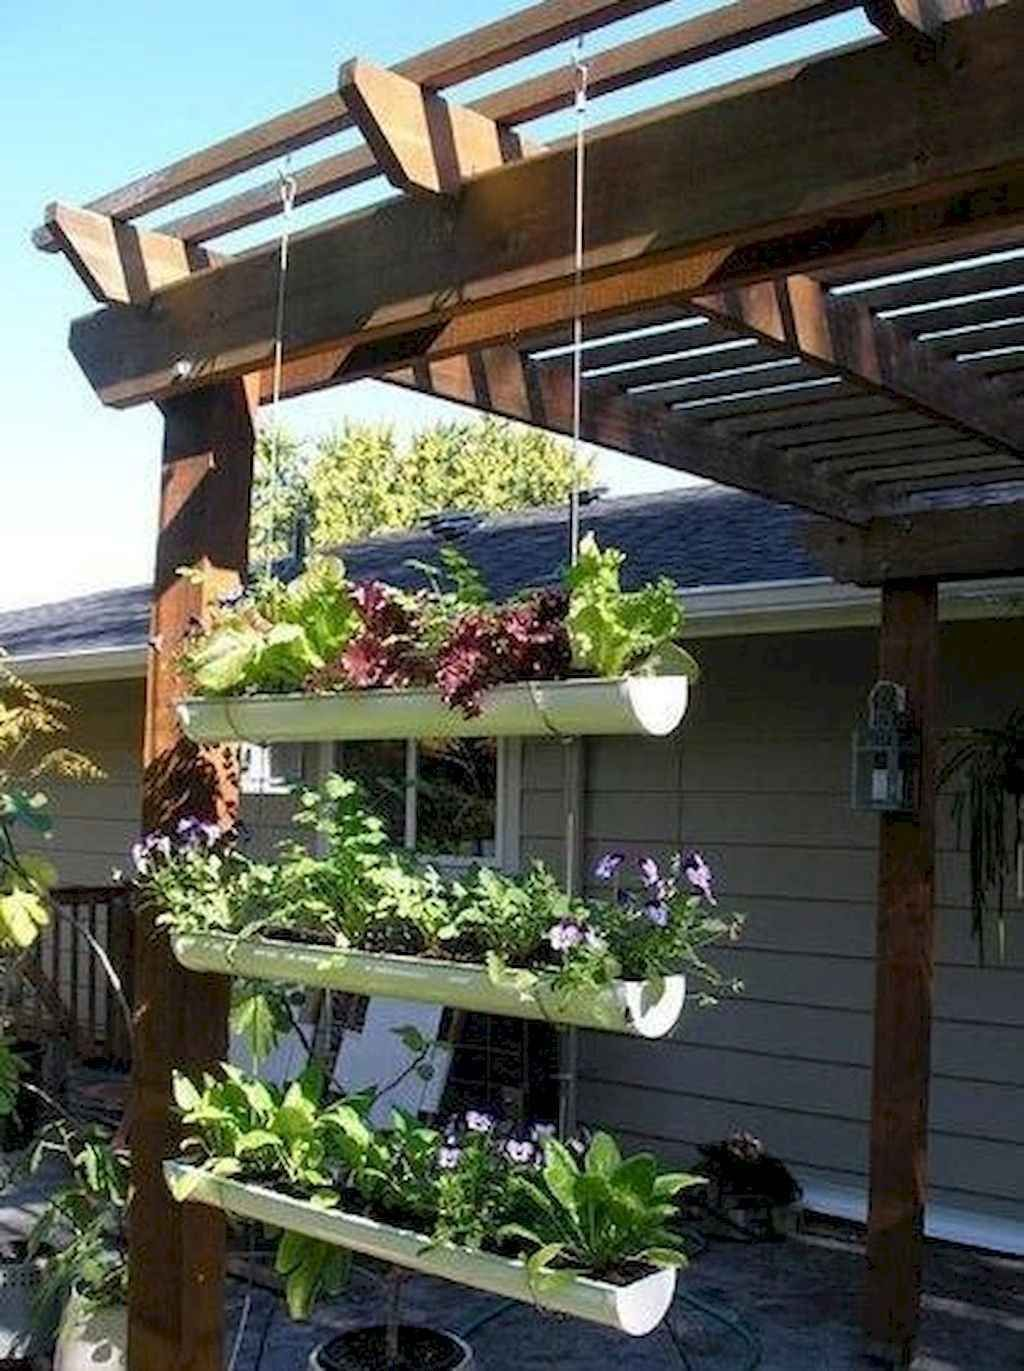 If you live in a city and have a small space (a balcony ...